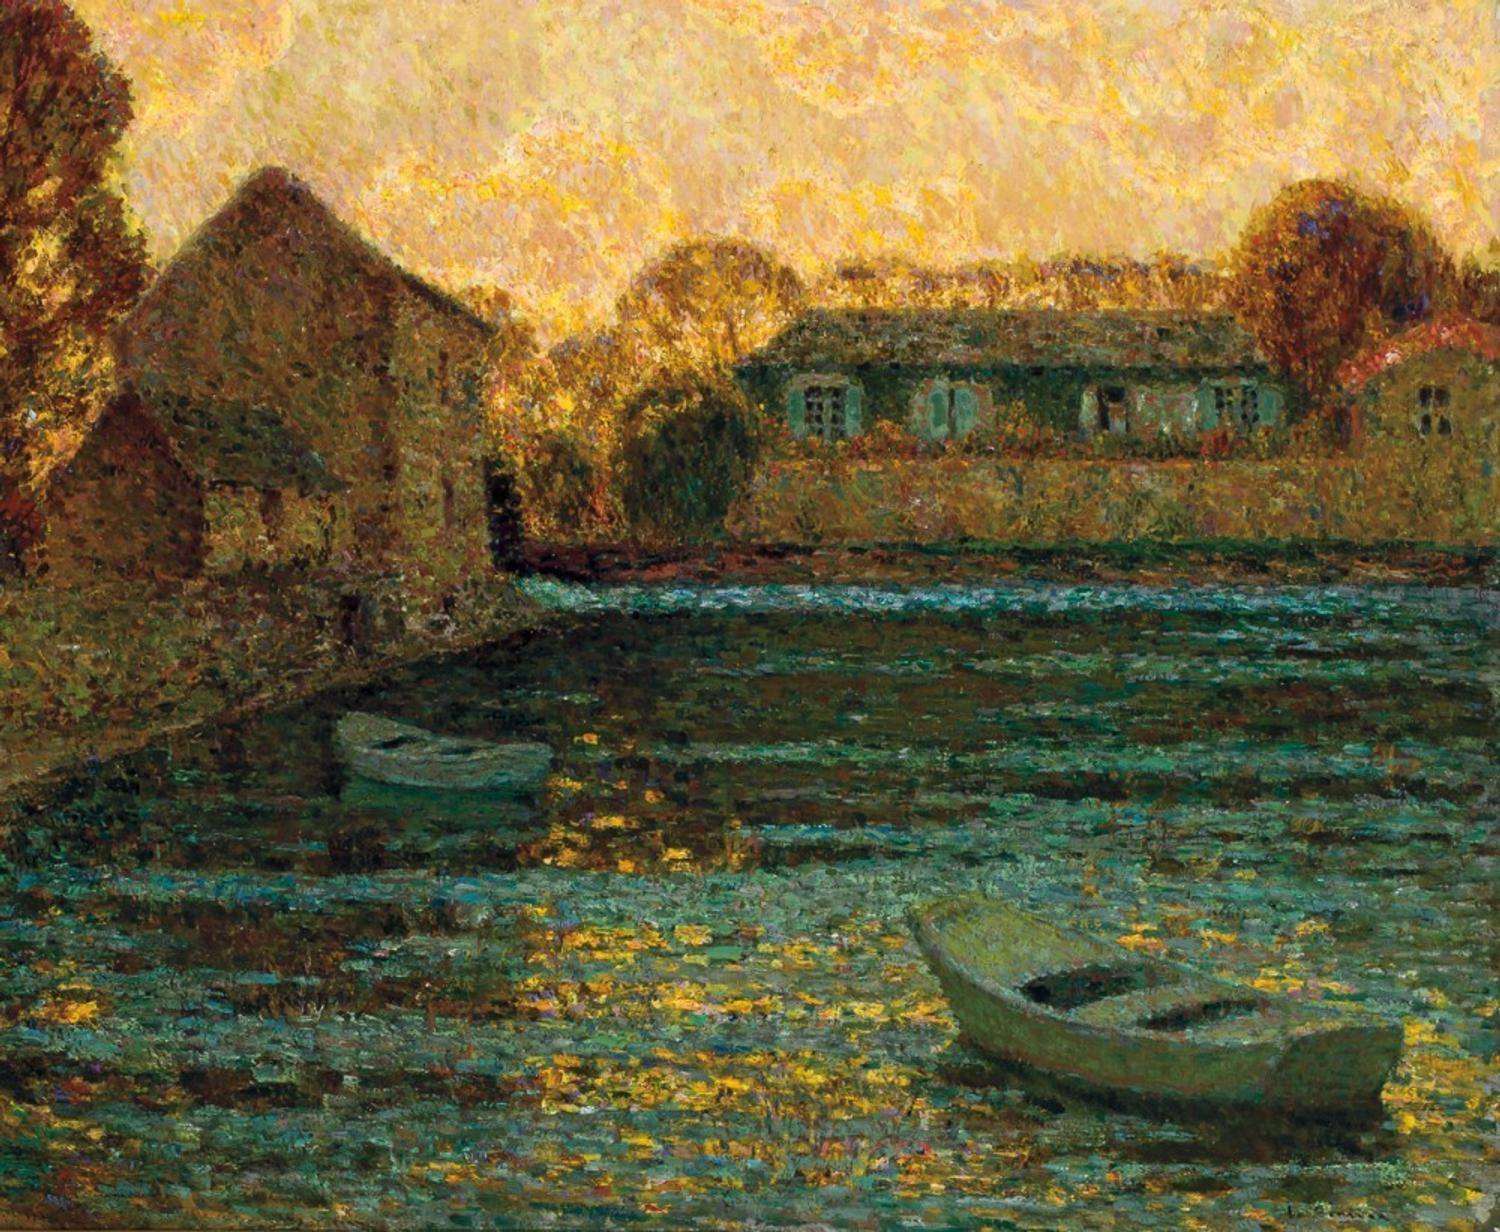 Original Oil Painting By Henri Le Sidaner Expected To